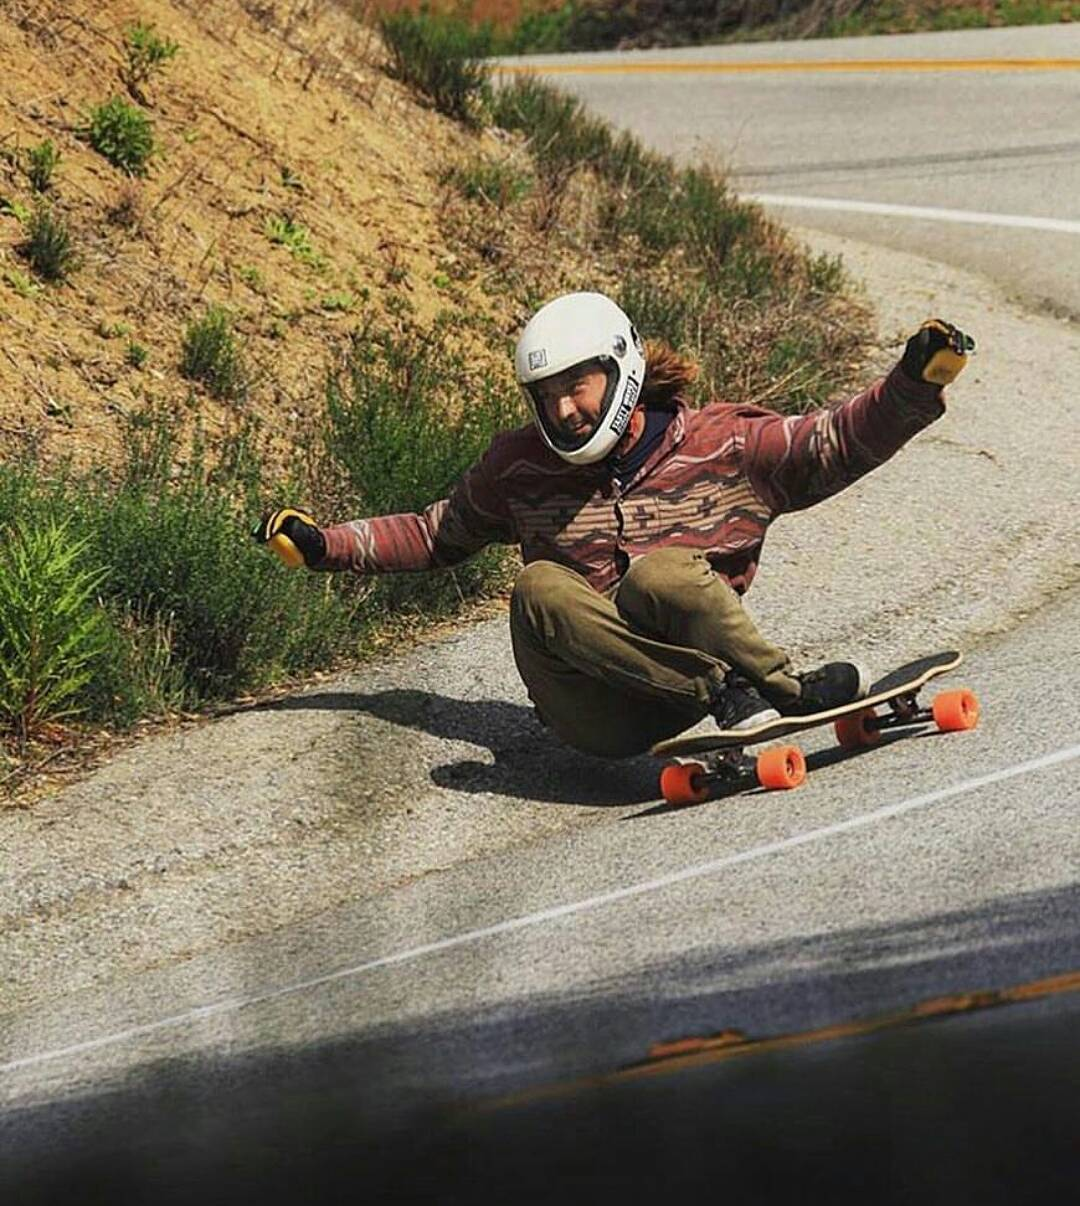 #LoadedAmbassador @danewebber teasing the ground with the booty as he swoops a heavy right turn on his #LoadedBoards #Tesseract  Photo: @dusty_ham